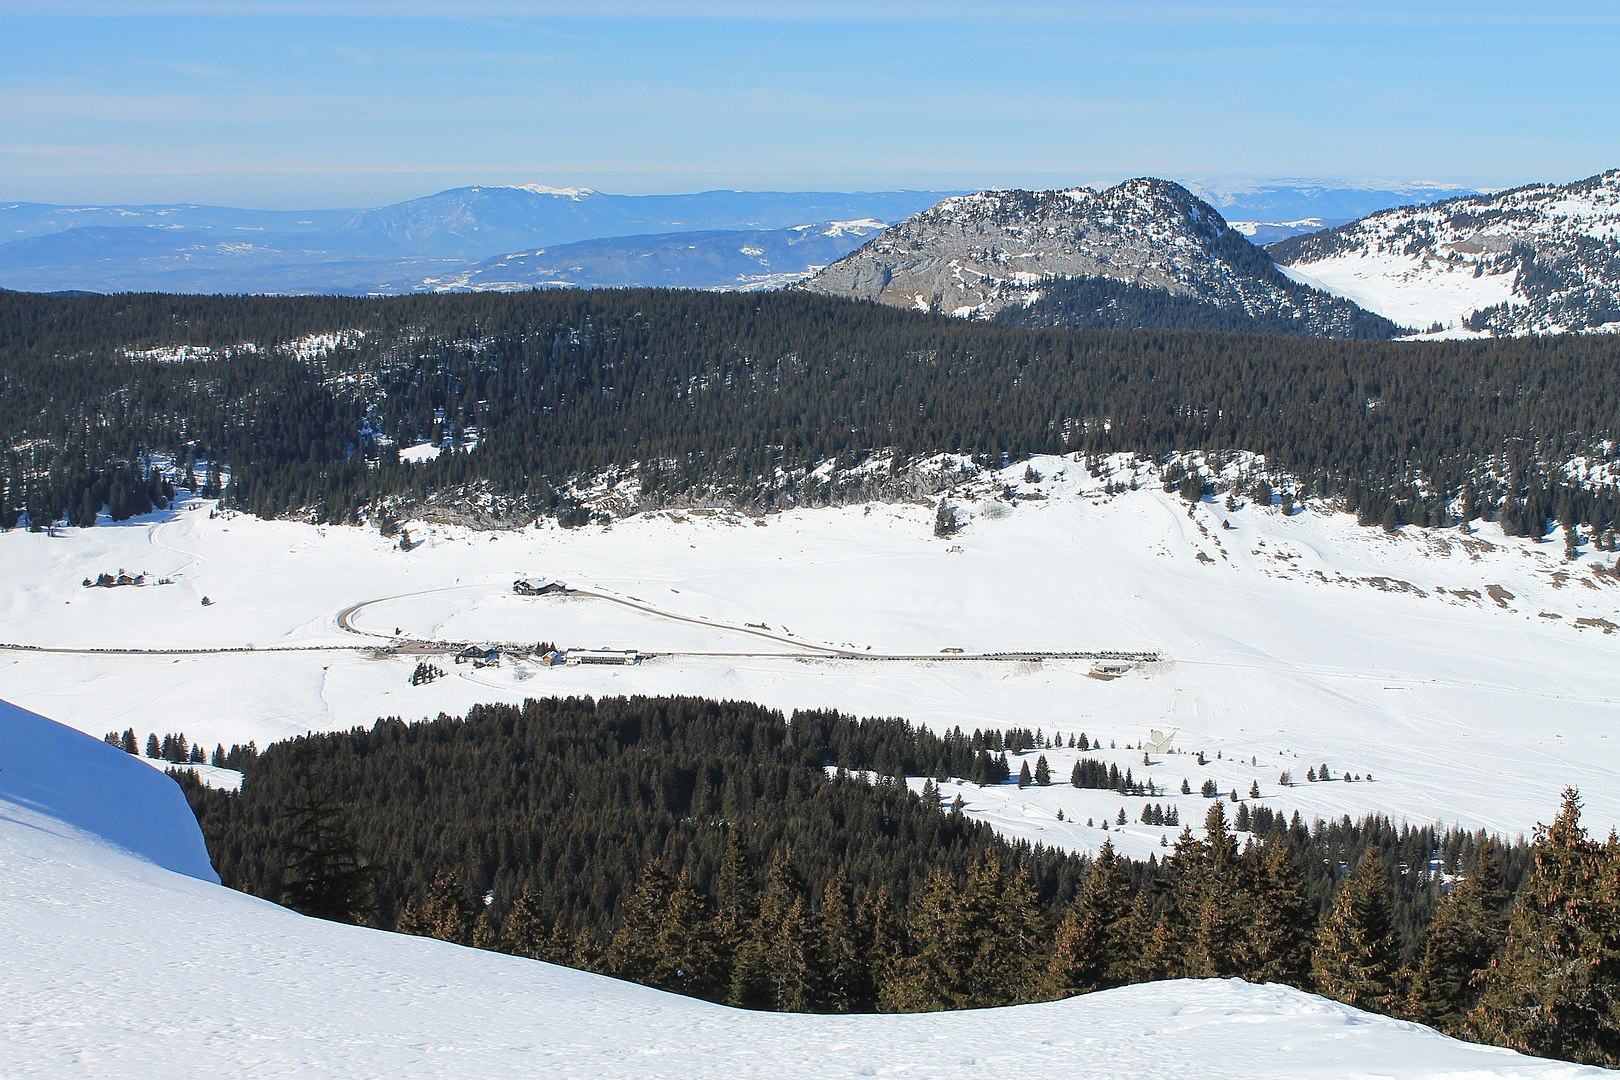 Plateau des Glières in winter © B. Brassoud - licence [CC BY-SA 4.0] from Wikimedia Commons